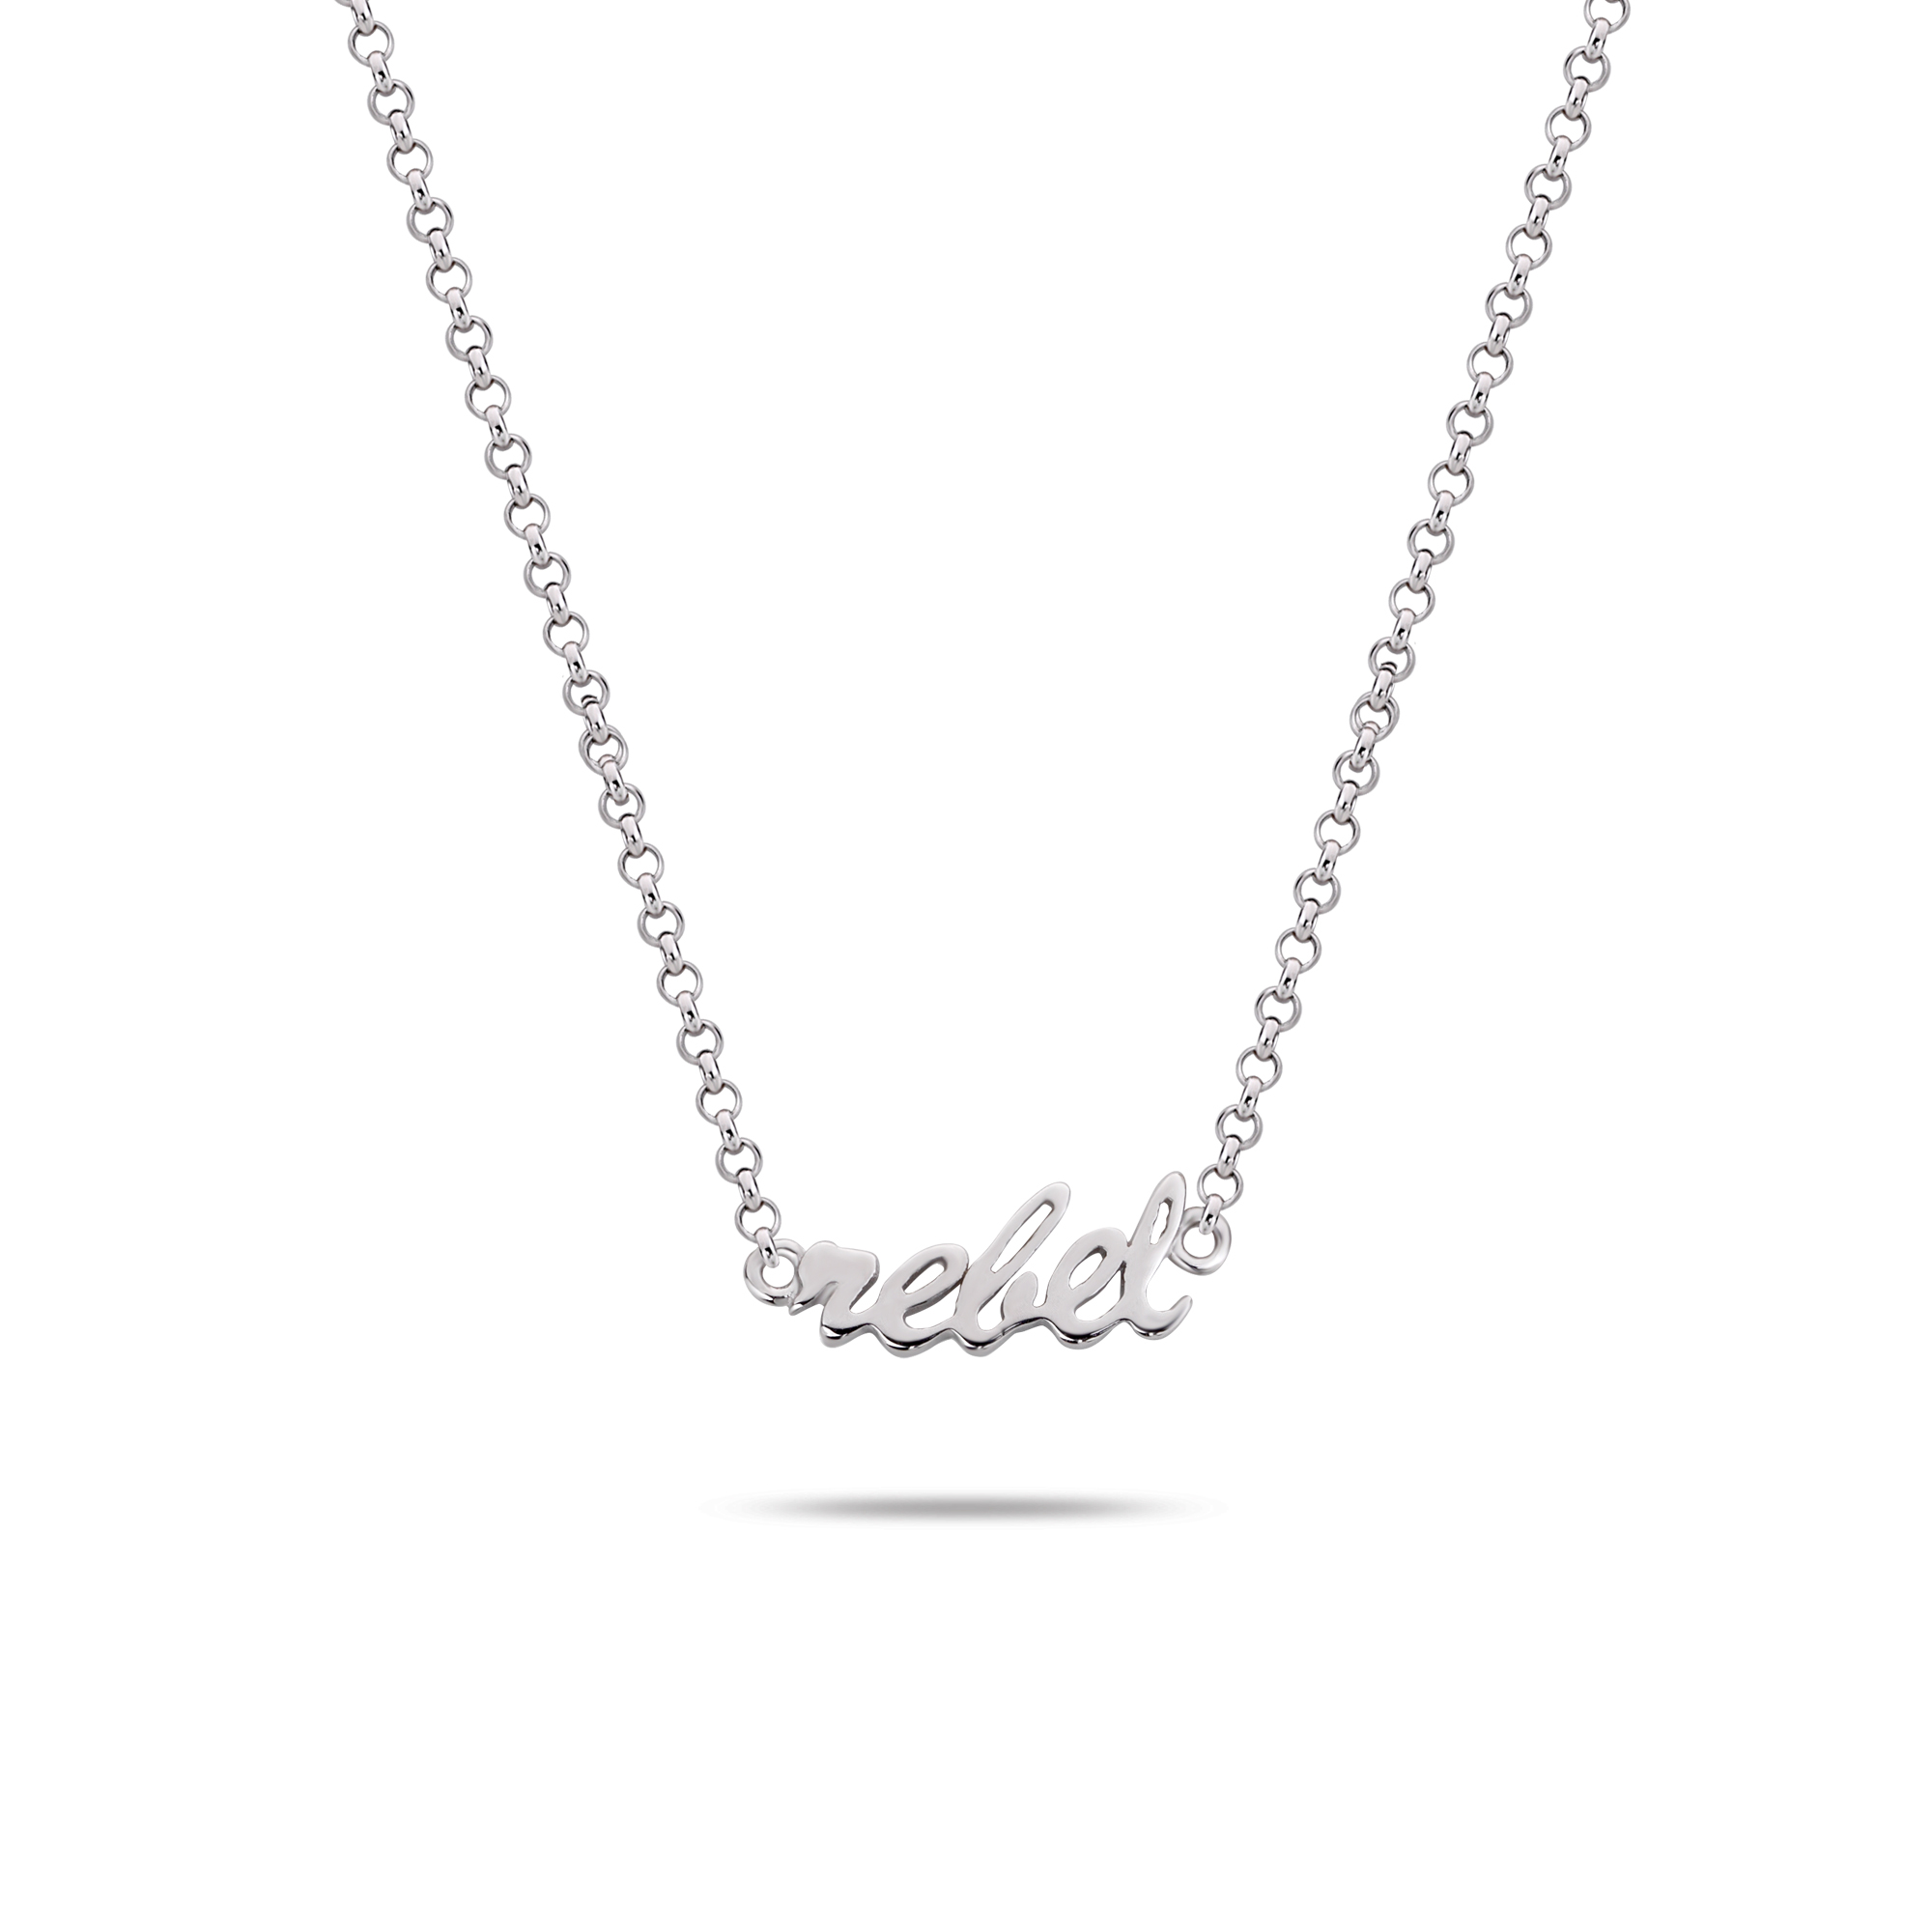 Rebel and Rose RR-NL005-S-49 Collier Necklace Rebel&Rose Silver 925 - 42cm S